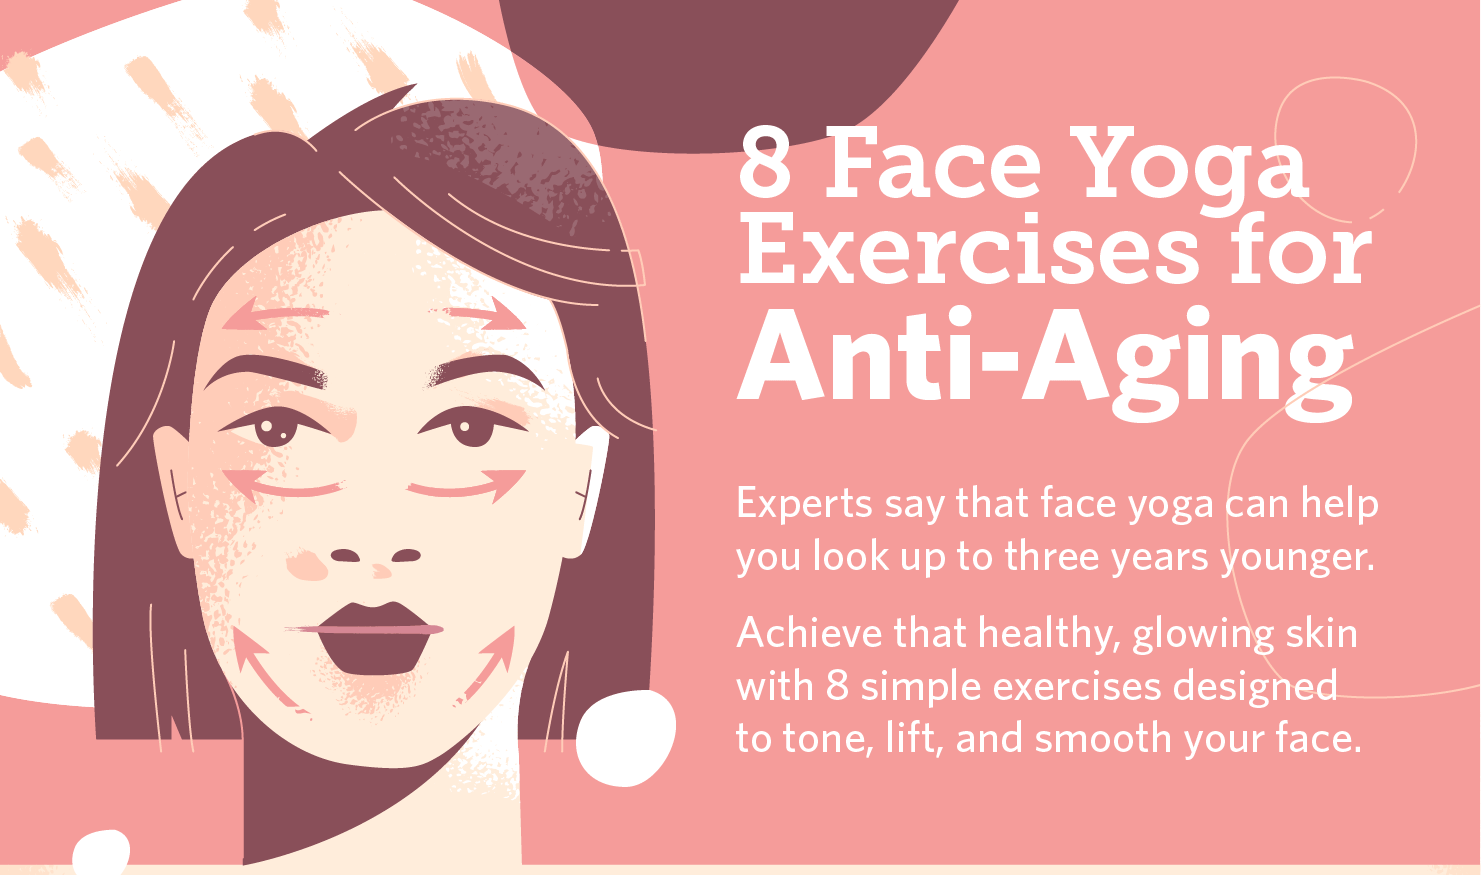 8 Face Yoga Exercises for Anti-Aging